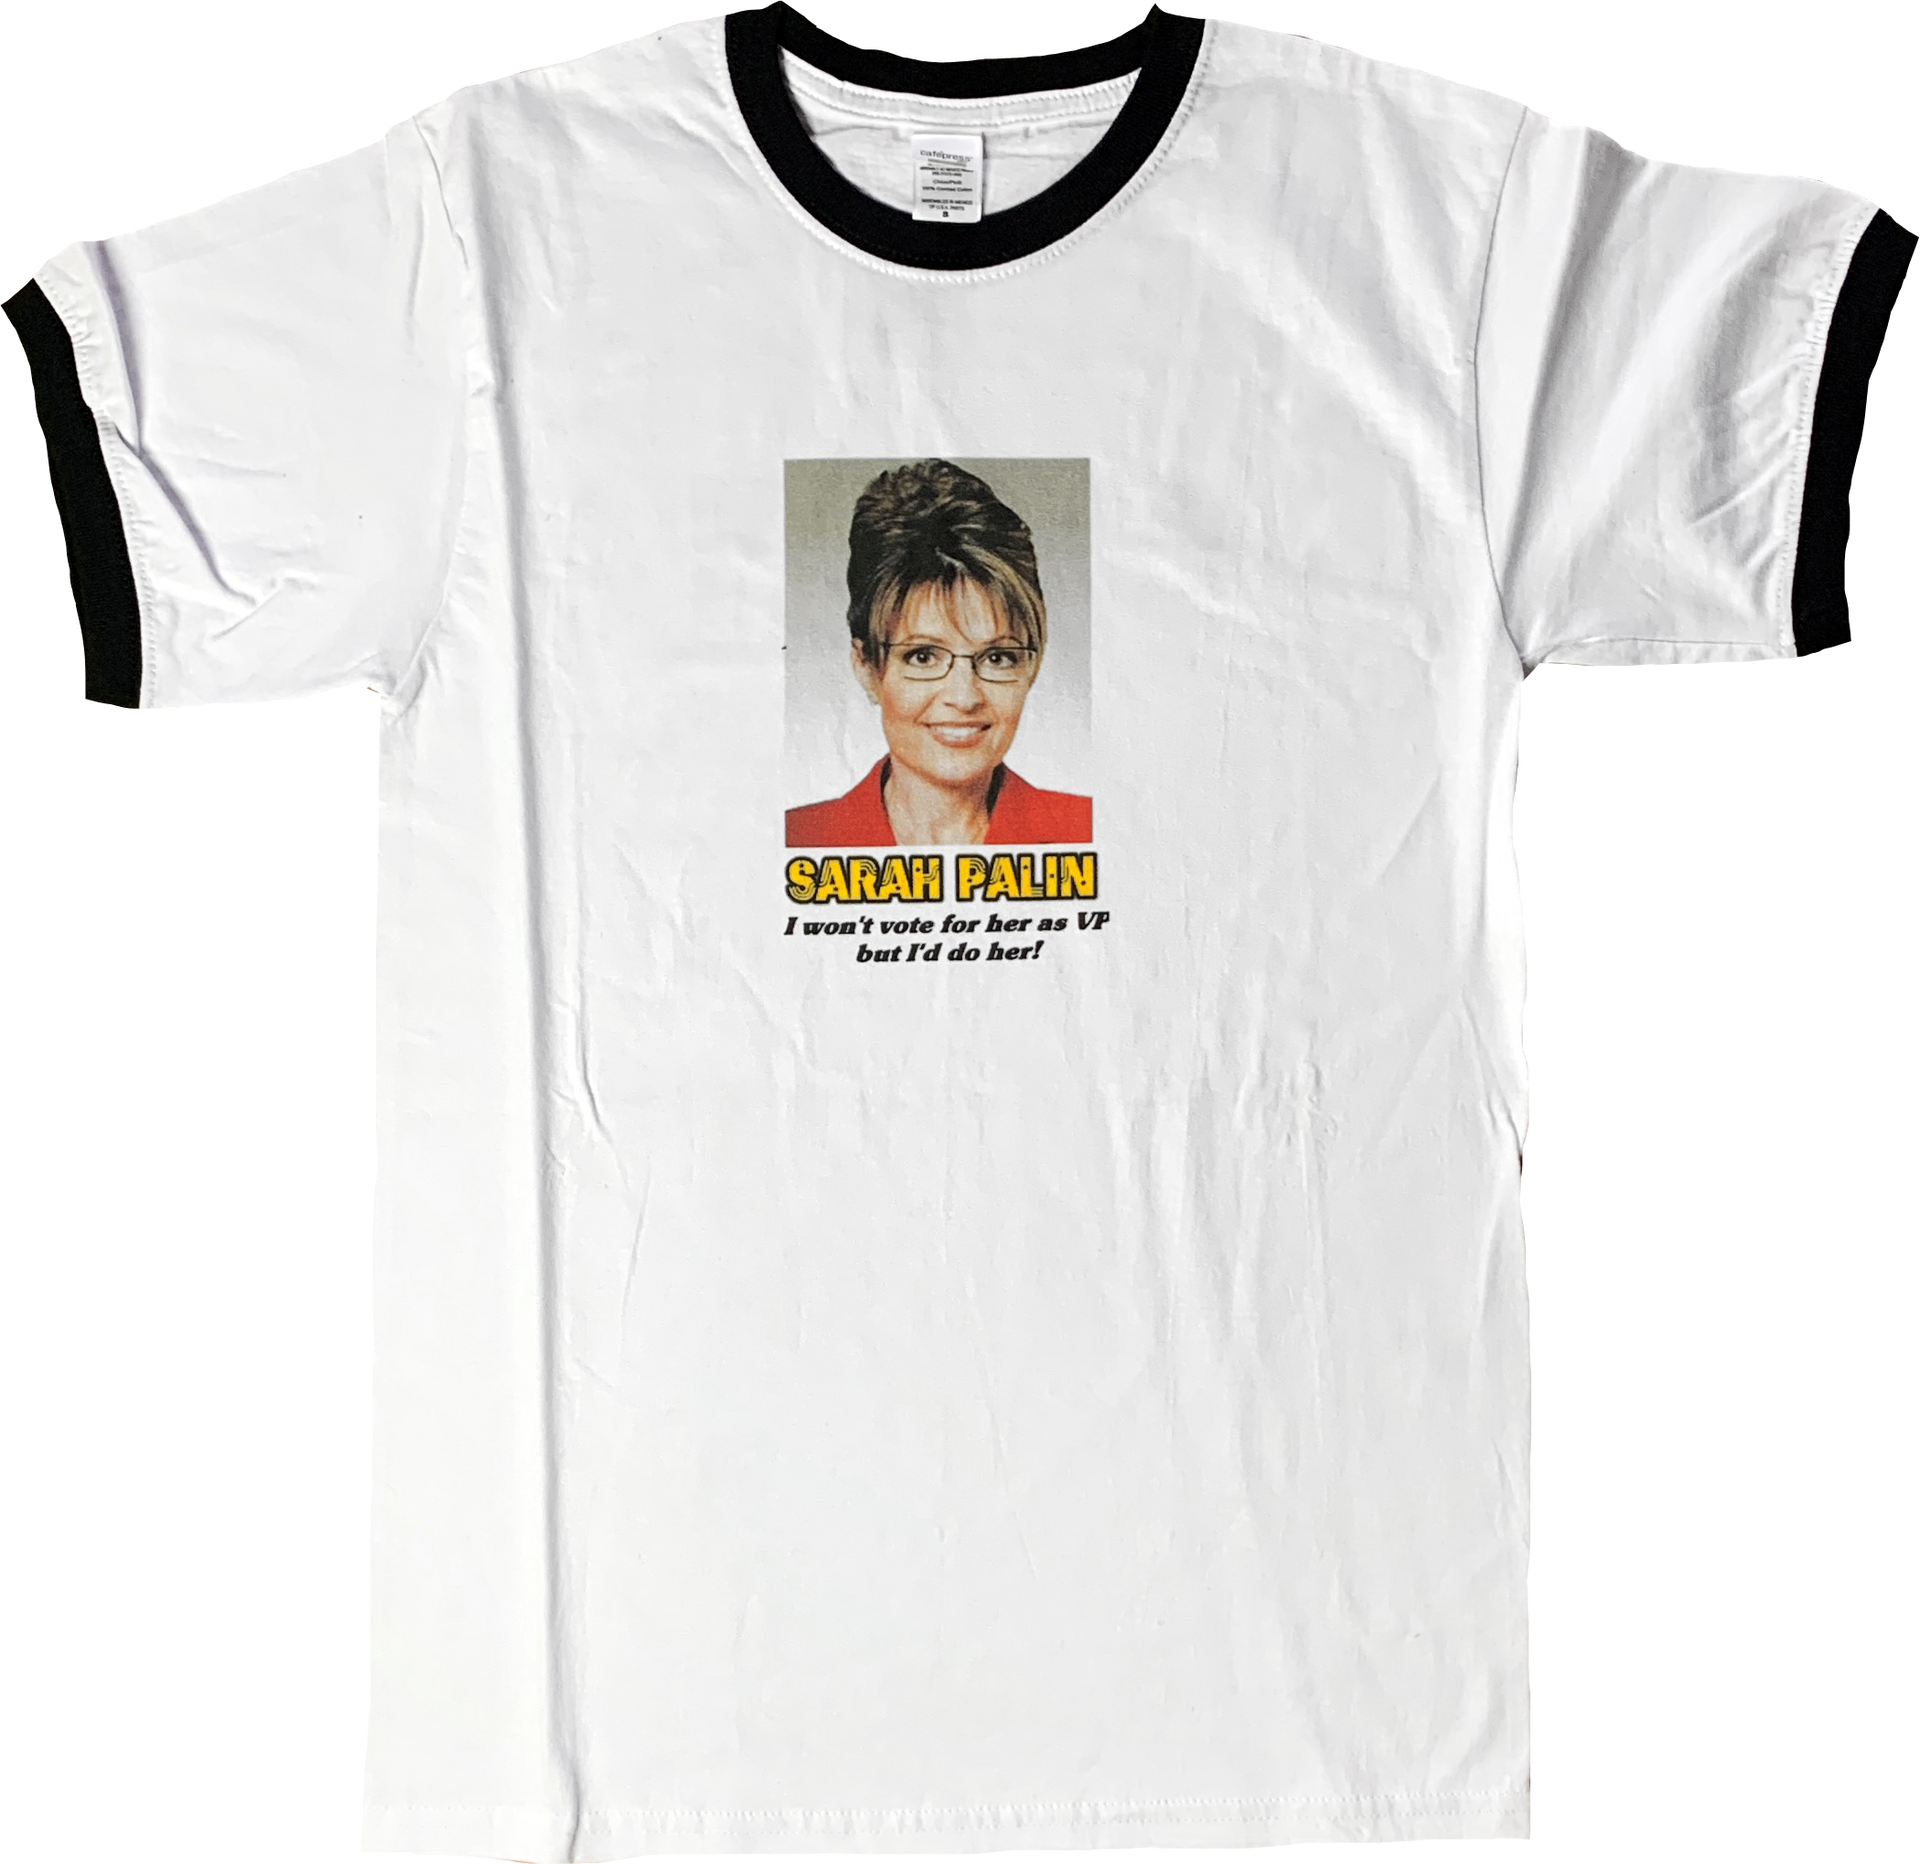 Sarah Palin - I won't vote for her as VP but I'd do her!